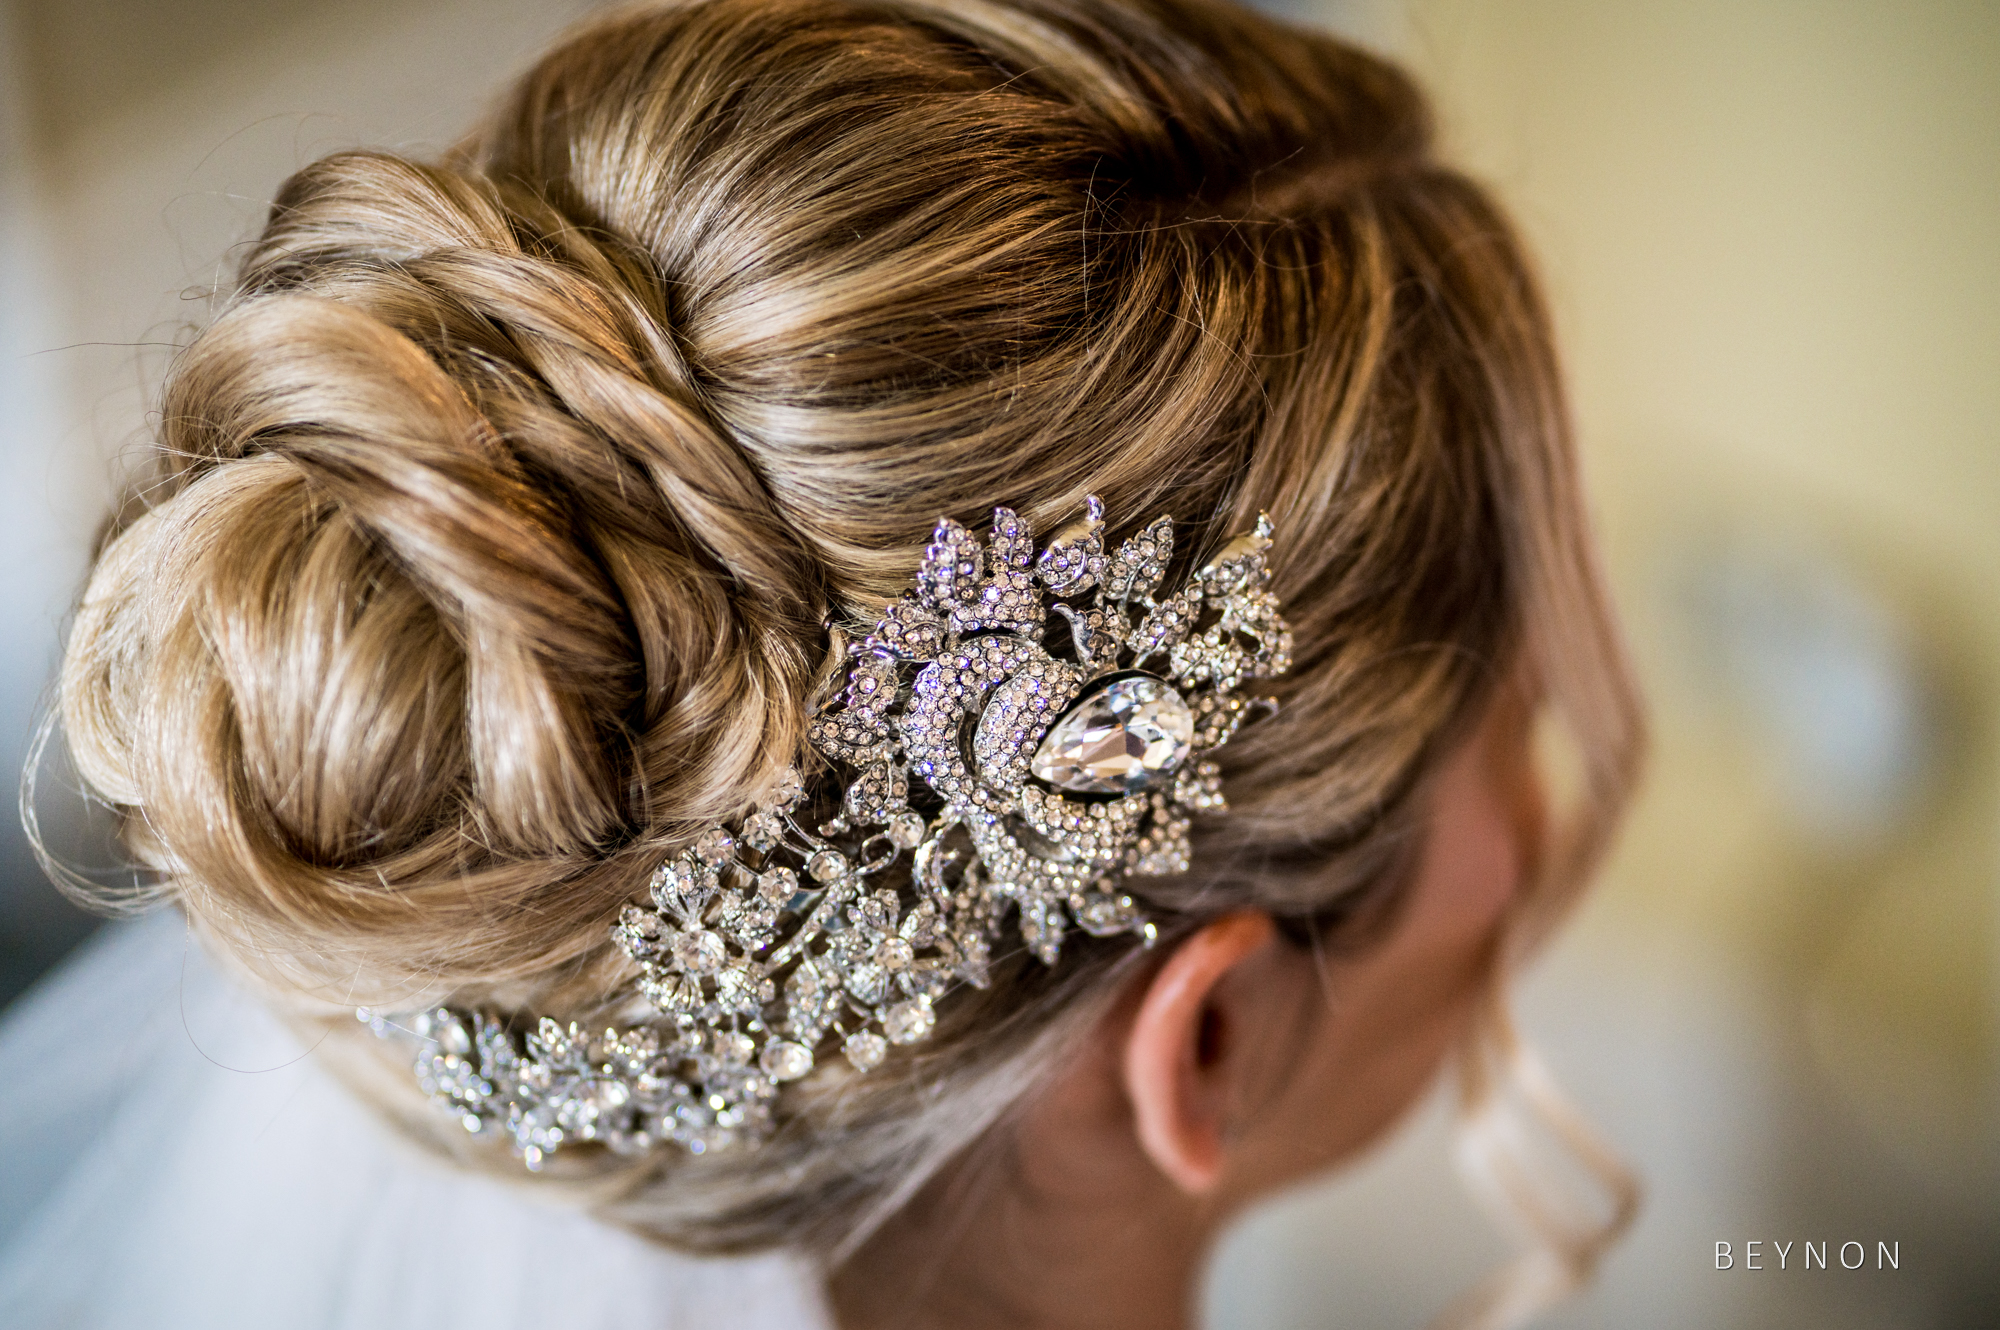 Bride hair and hairpiece details